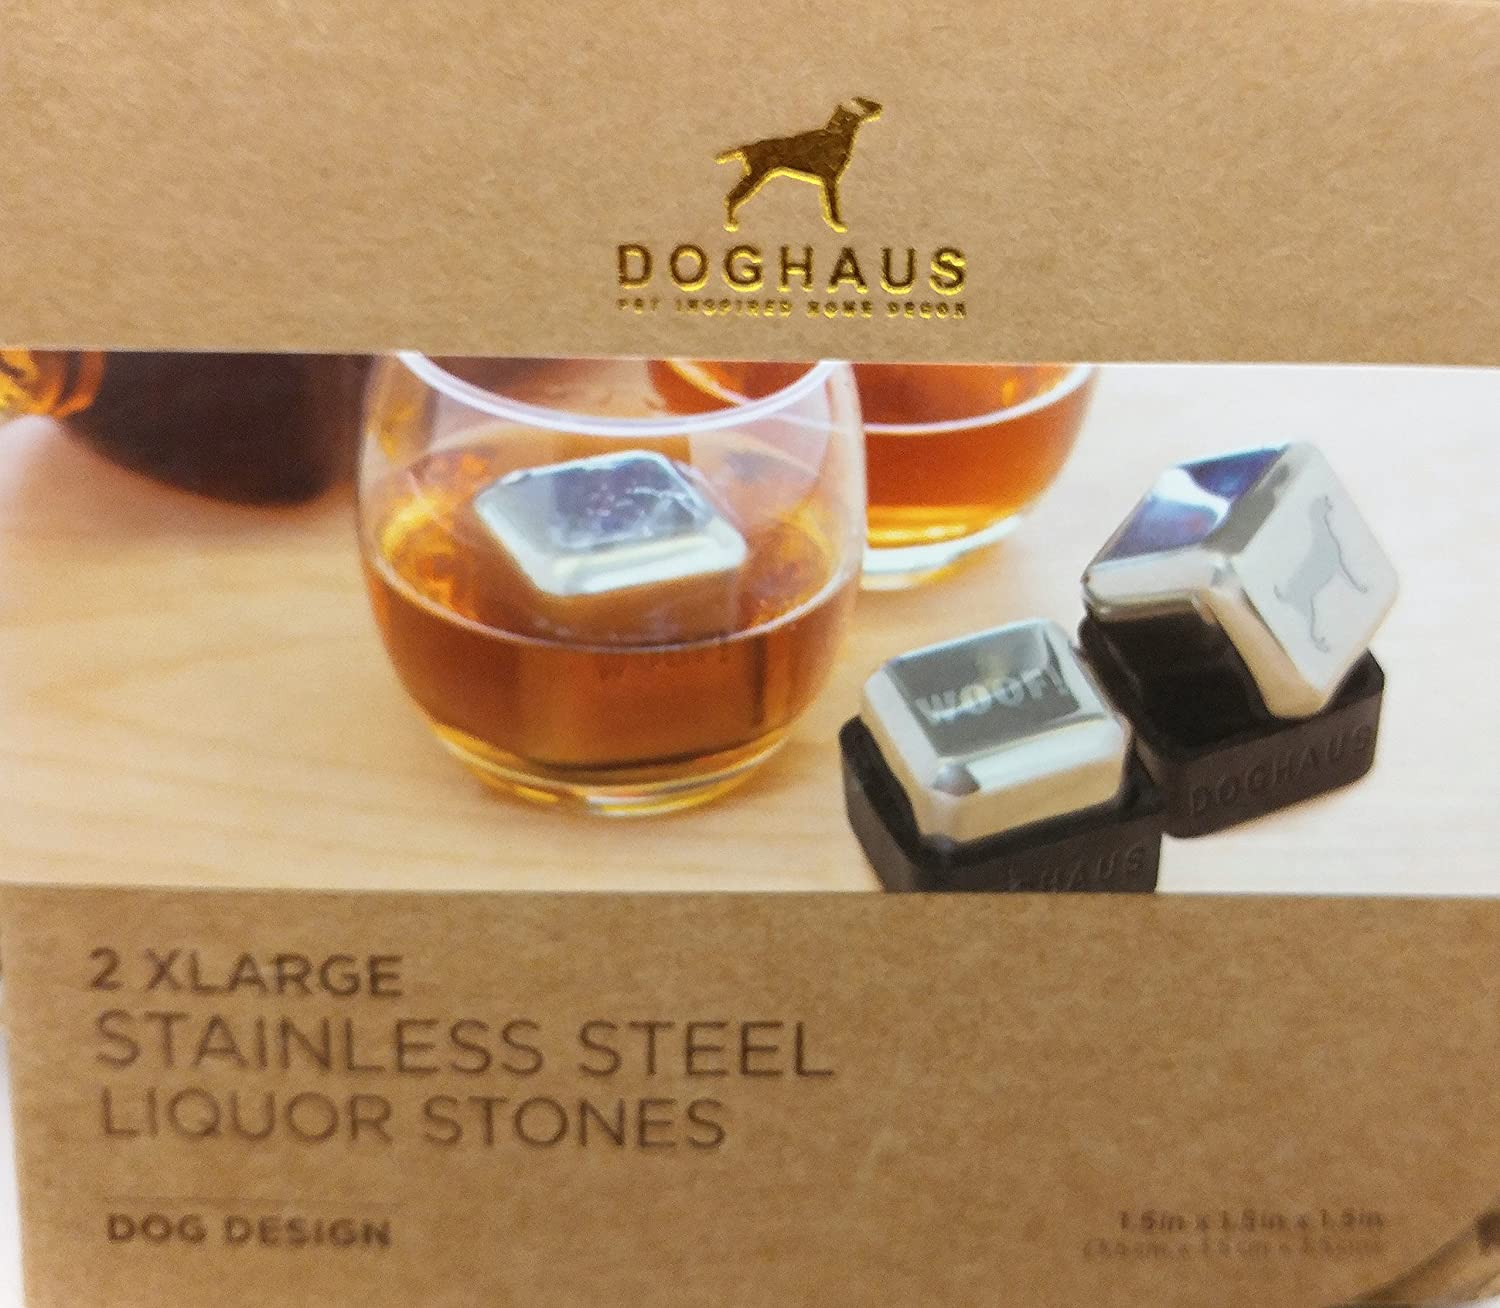 Doghaus Stainless Steel Liquor Whiskey Stones with Stands Set of 2 XL Dog Design Paws 1.5' x 1.5' x 1.5'